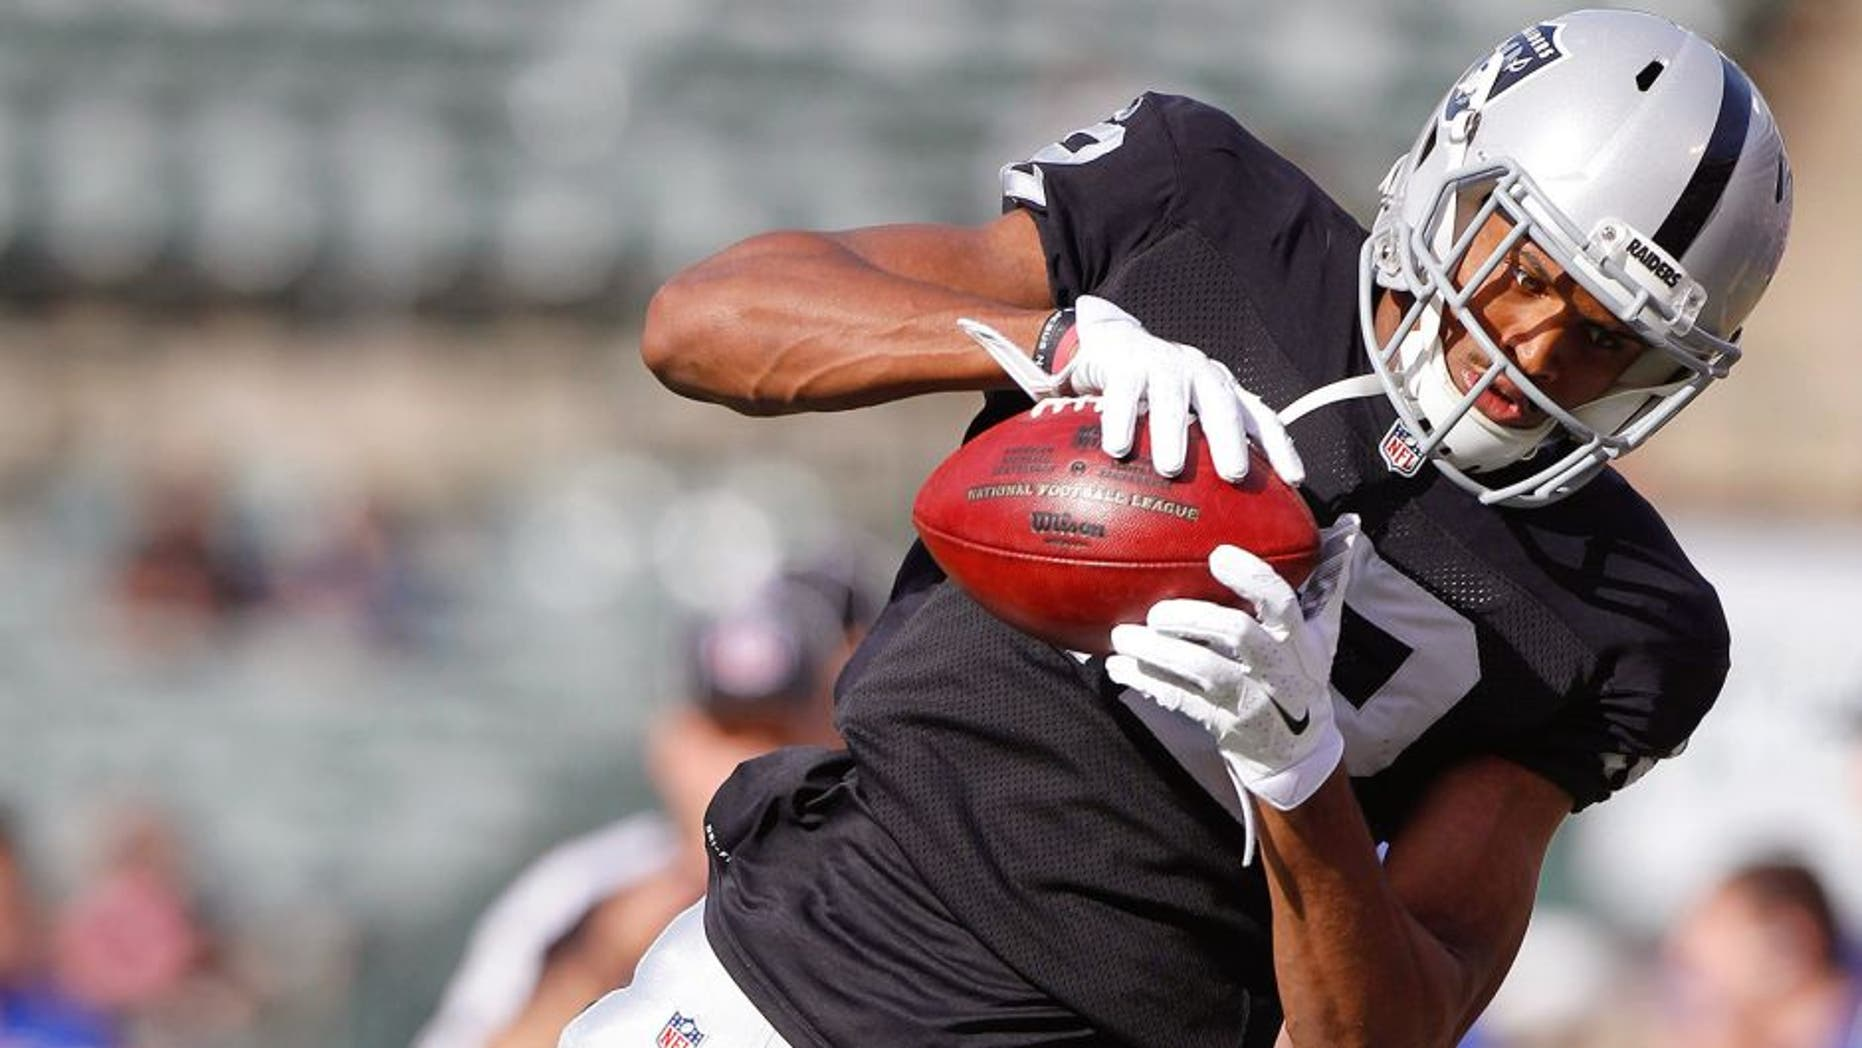 Dec 21, 2014; Oakland, CA, USA; Oakland Raiders wide receiver Brice Butler (12) catches a pass before a game against the Buffalo Bills at O.co Coliseum. Mandatory Credit: Cary Edmondson-USA TODAY Sports